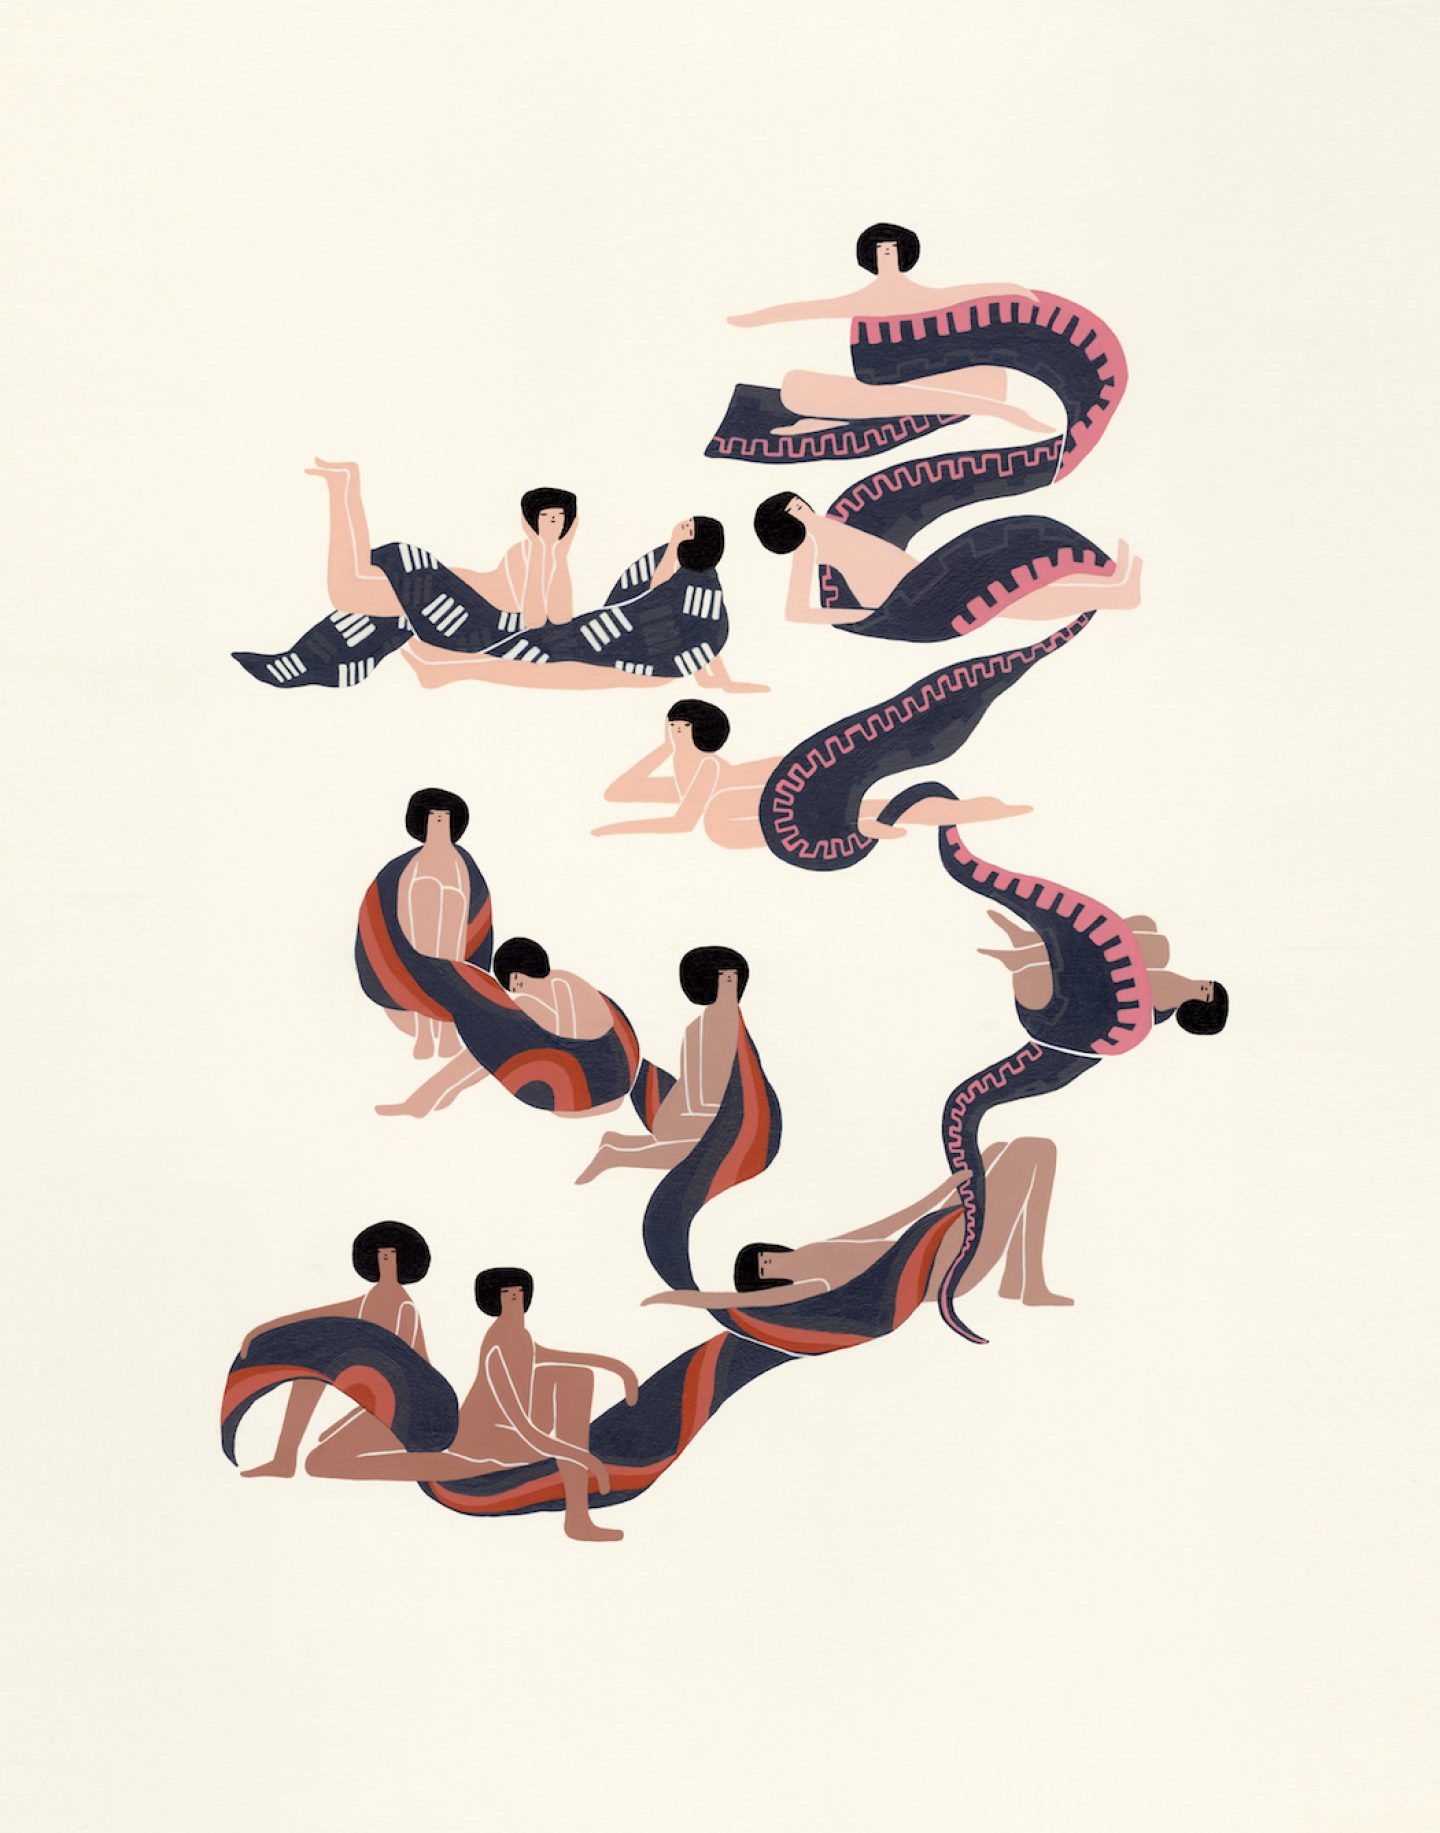 Laura_Berger_Illustration_Weaving